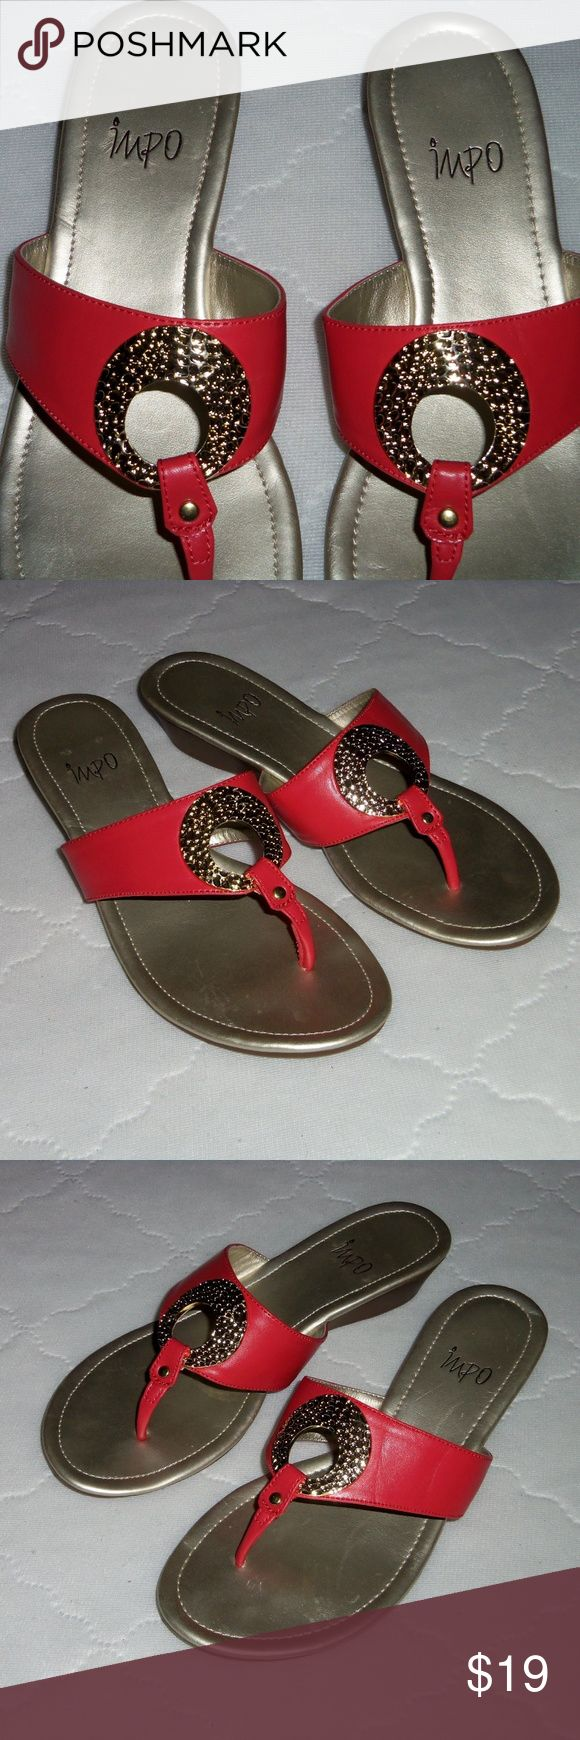 """Impo coral ring dressy flip flops 7.5 Very cute dressy sandals by Impo,  coral color upper with gold metallic ring in center. Show minimal wear overall. Slight heel approx. 1.5"""". See all pictures! Impo Shoes Sandals"""